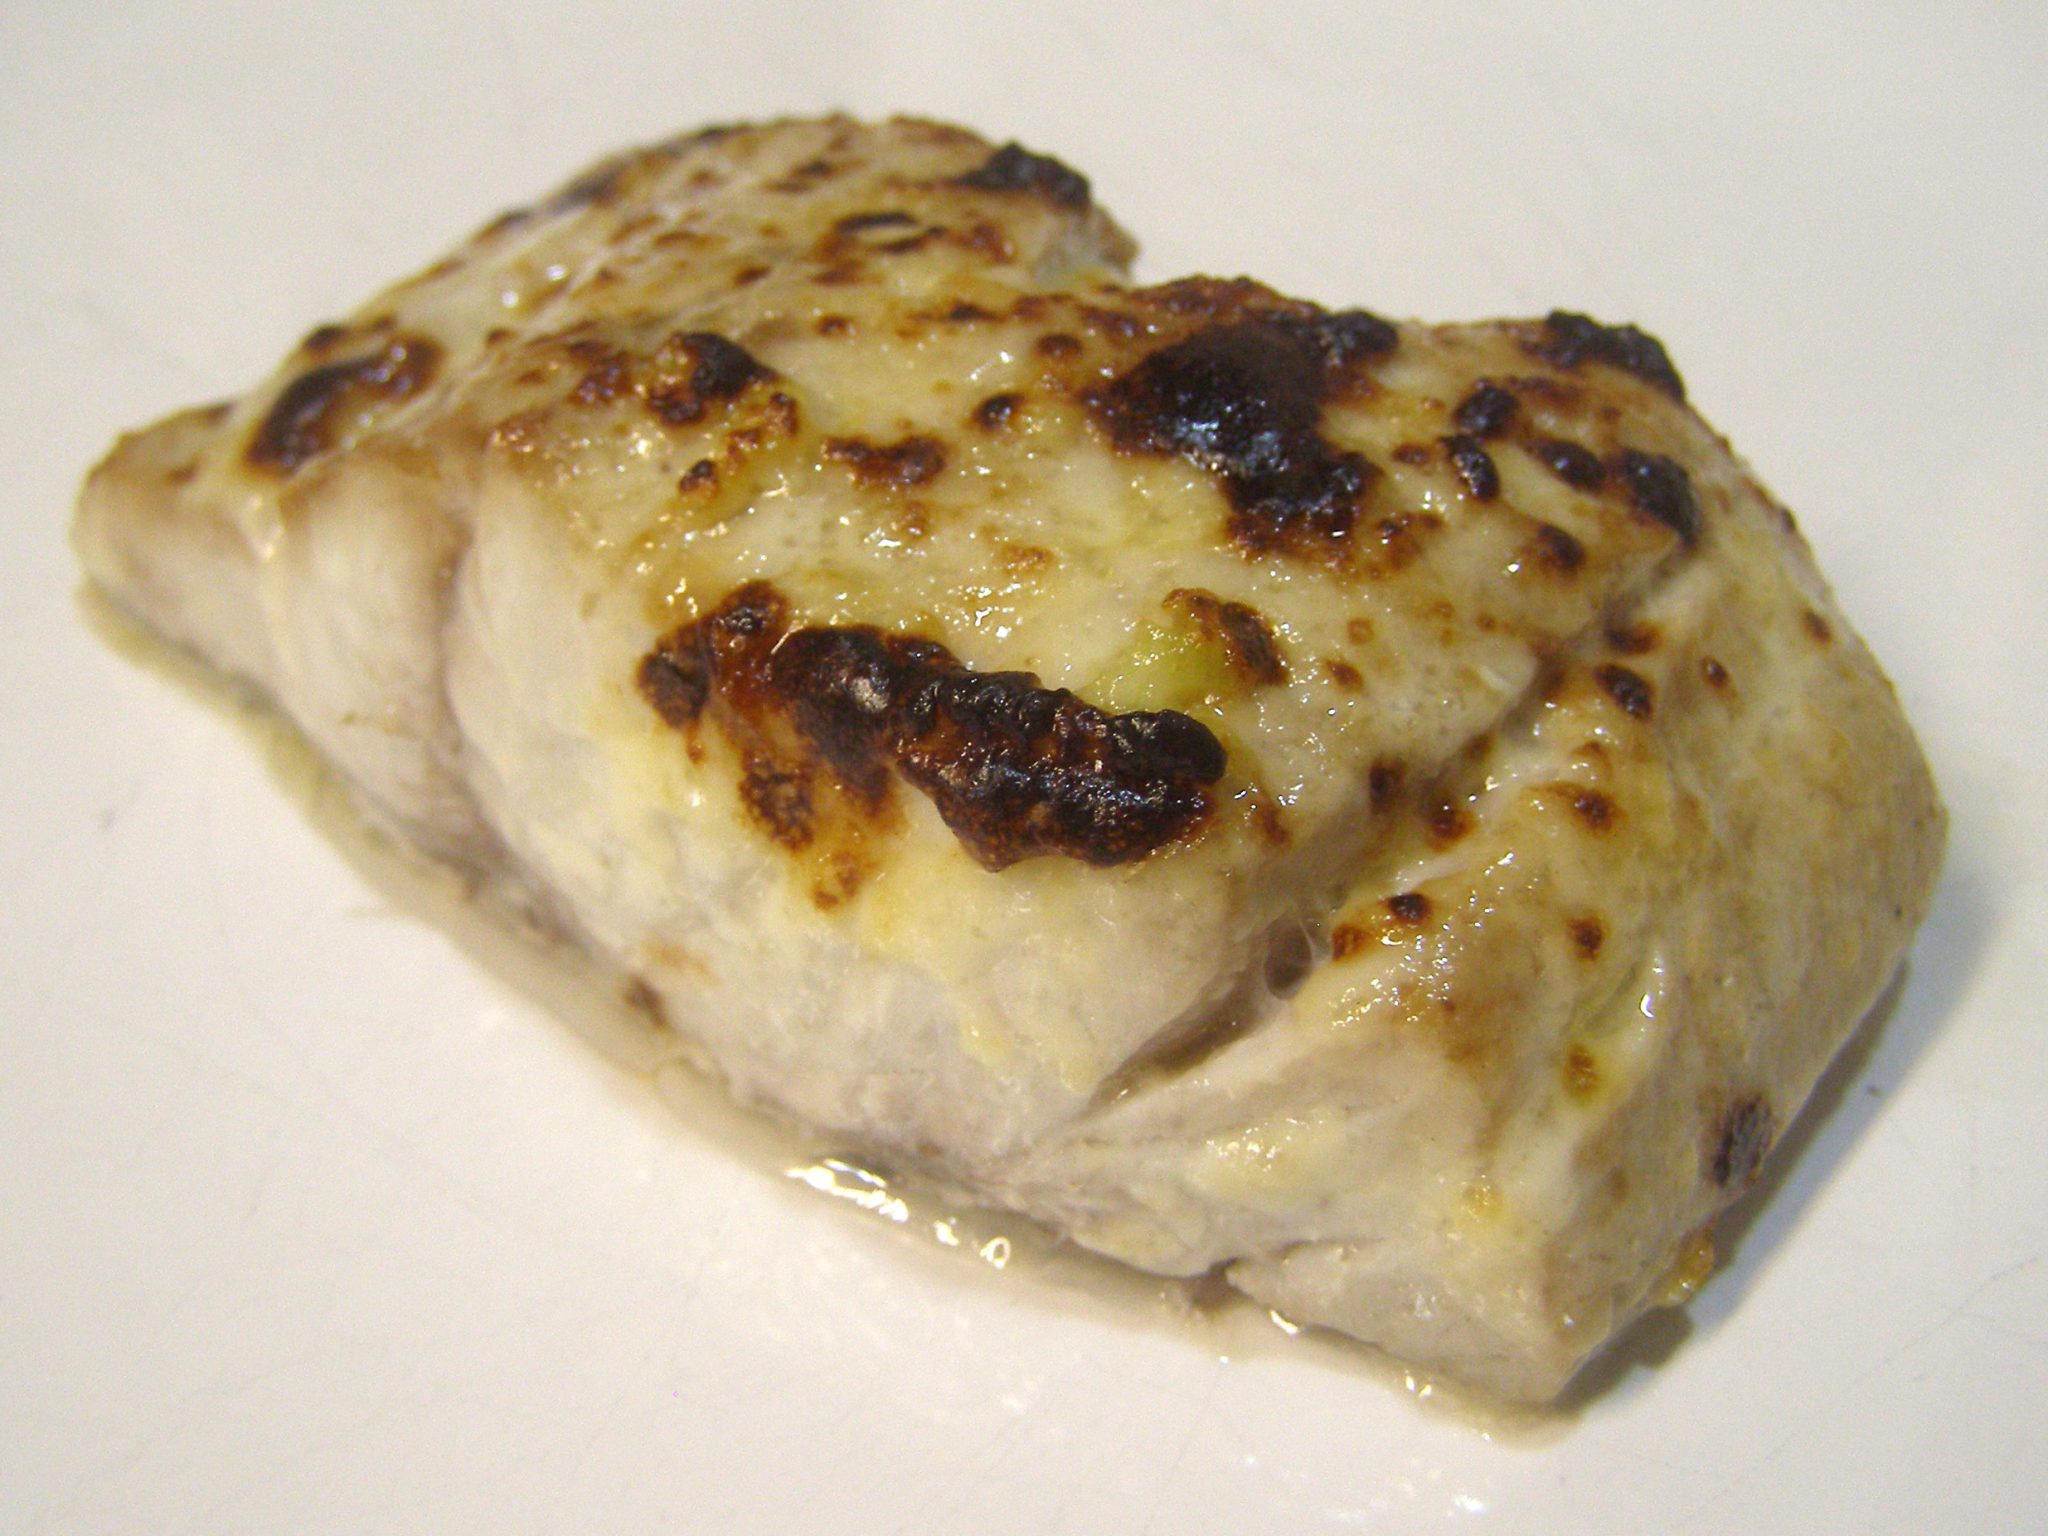 Bluefish with Lemon-Garlic Mayonnaise